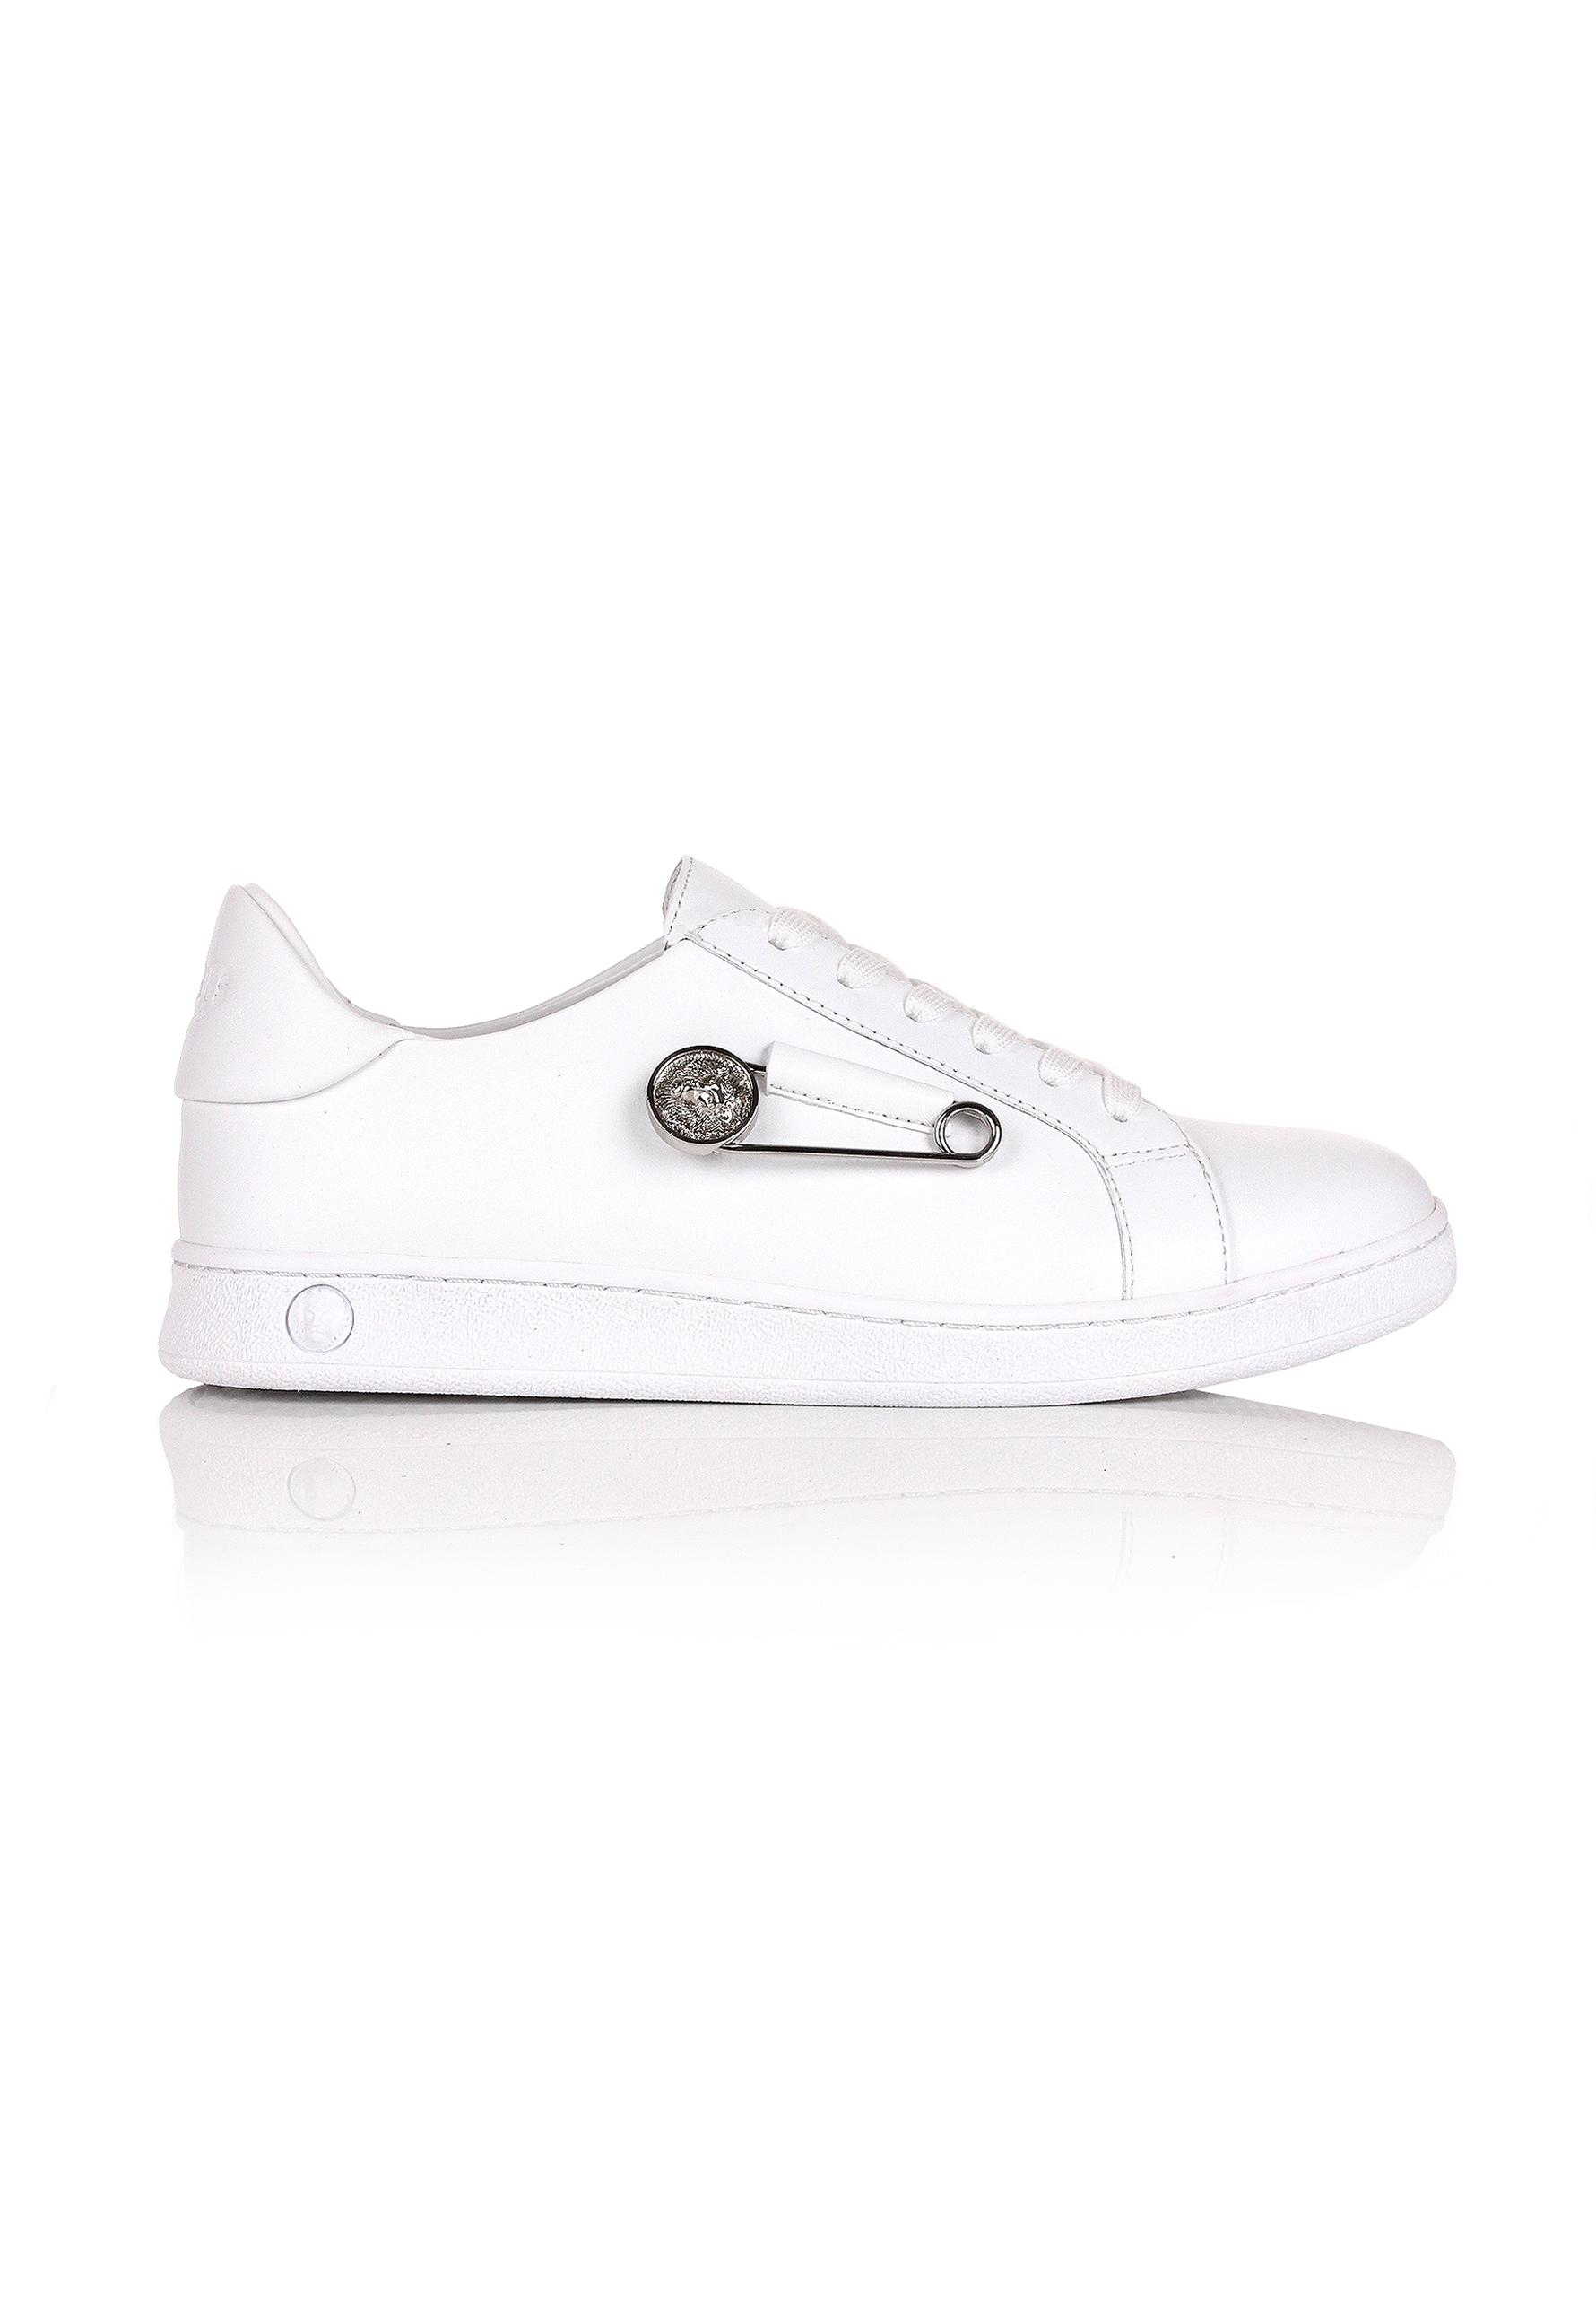 Versus LETTERING & SAFETY PIN LEATHER SNEAKERS Grq01Lq